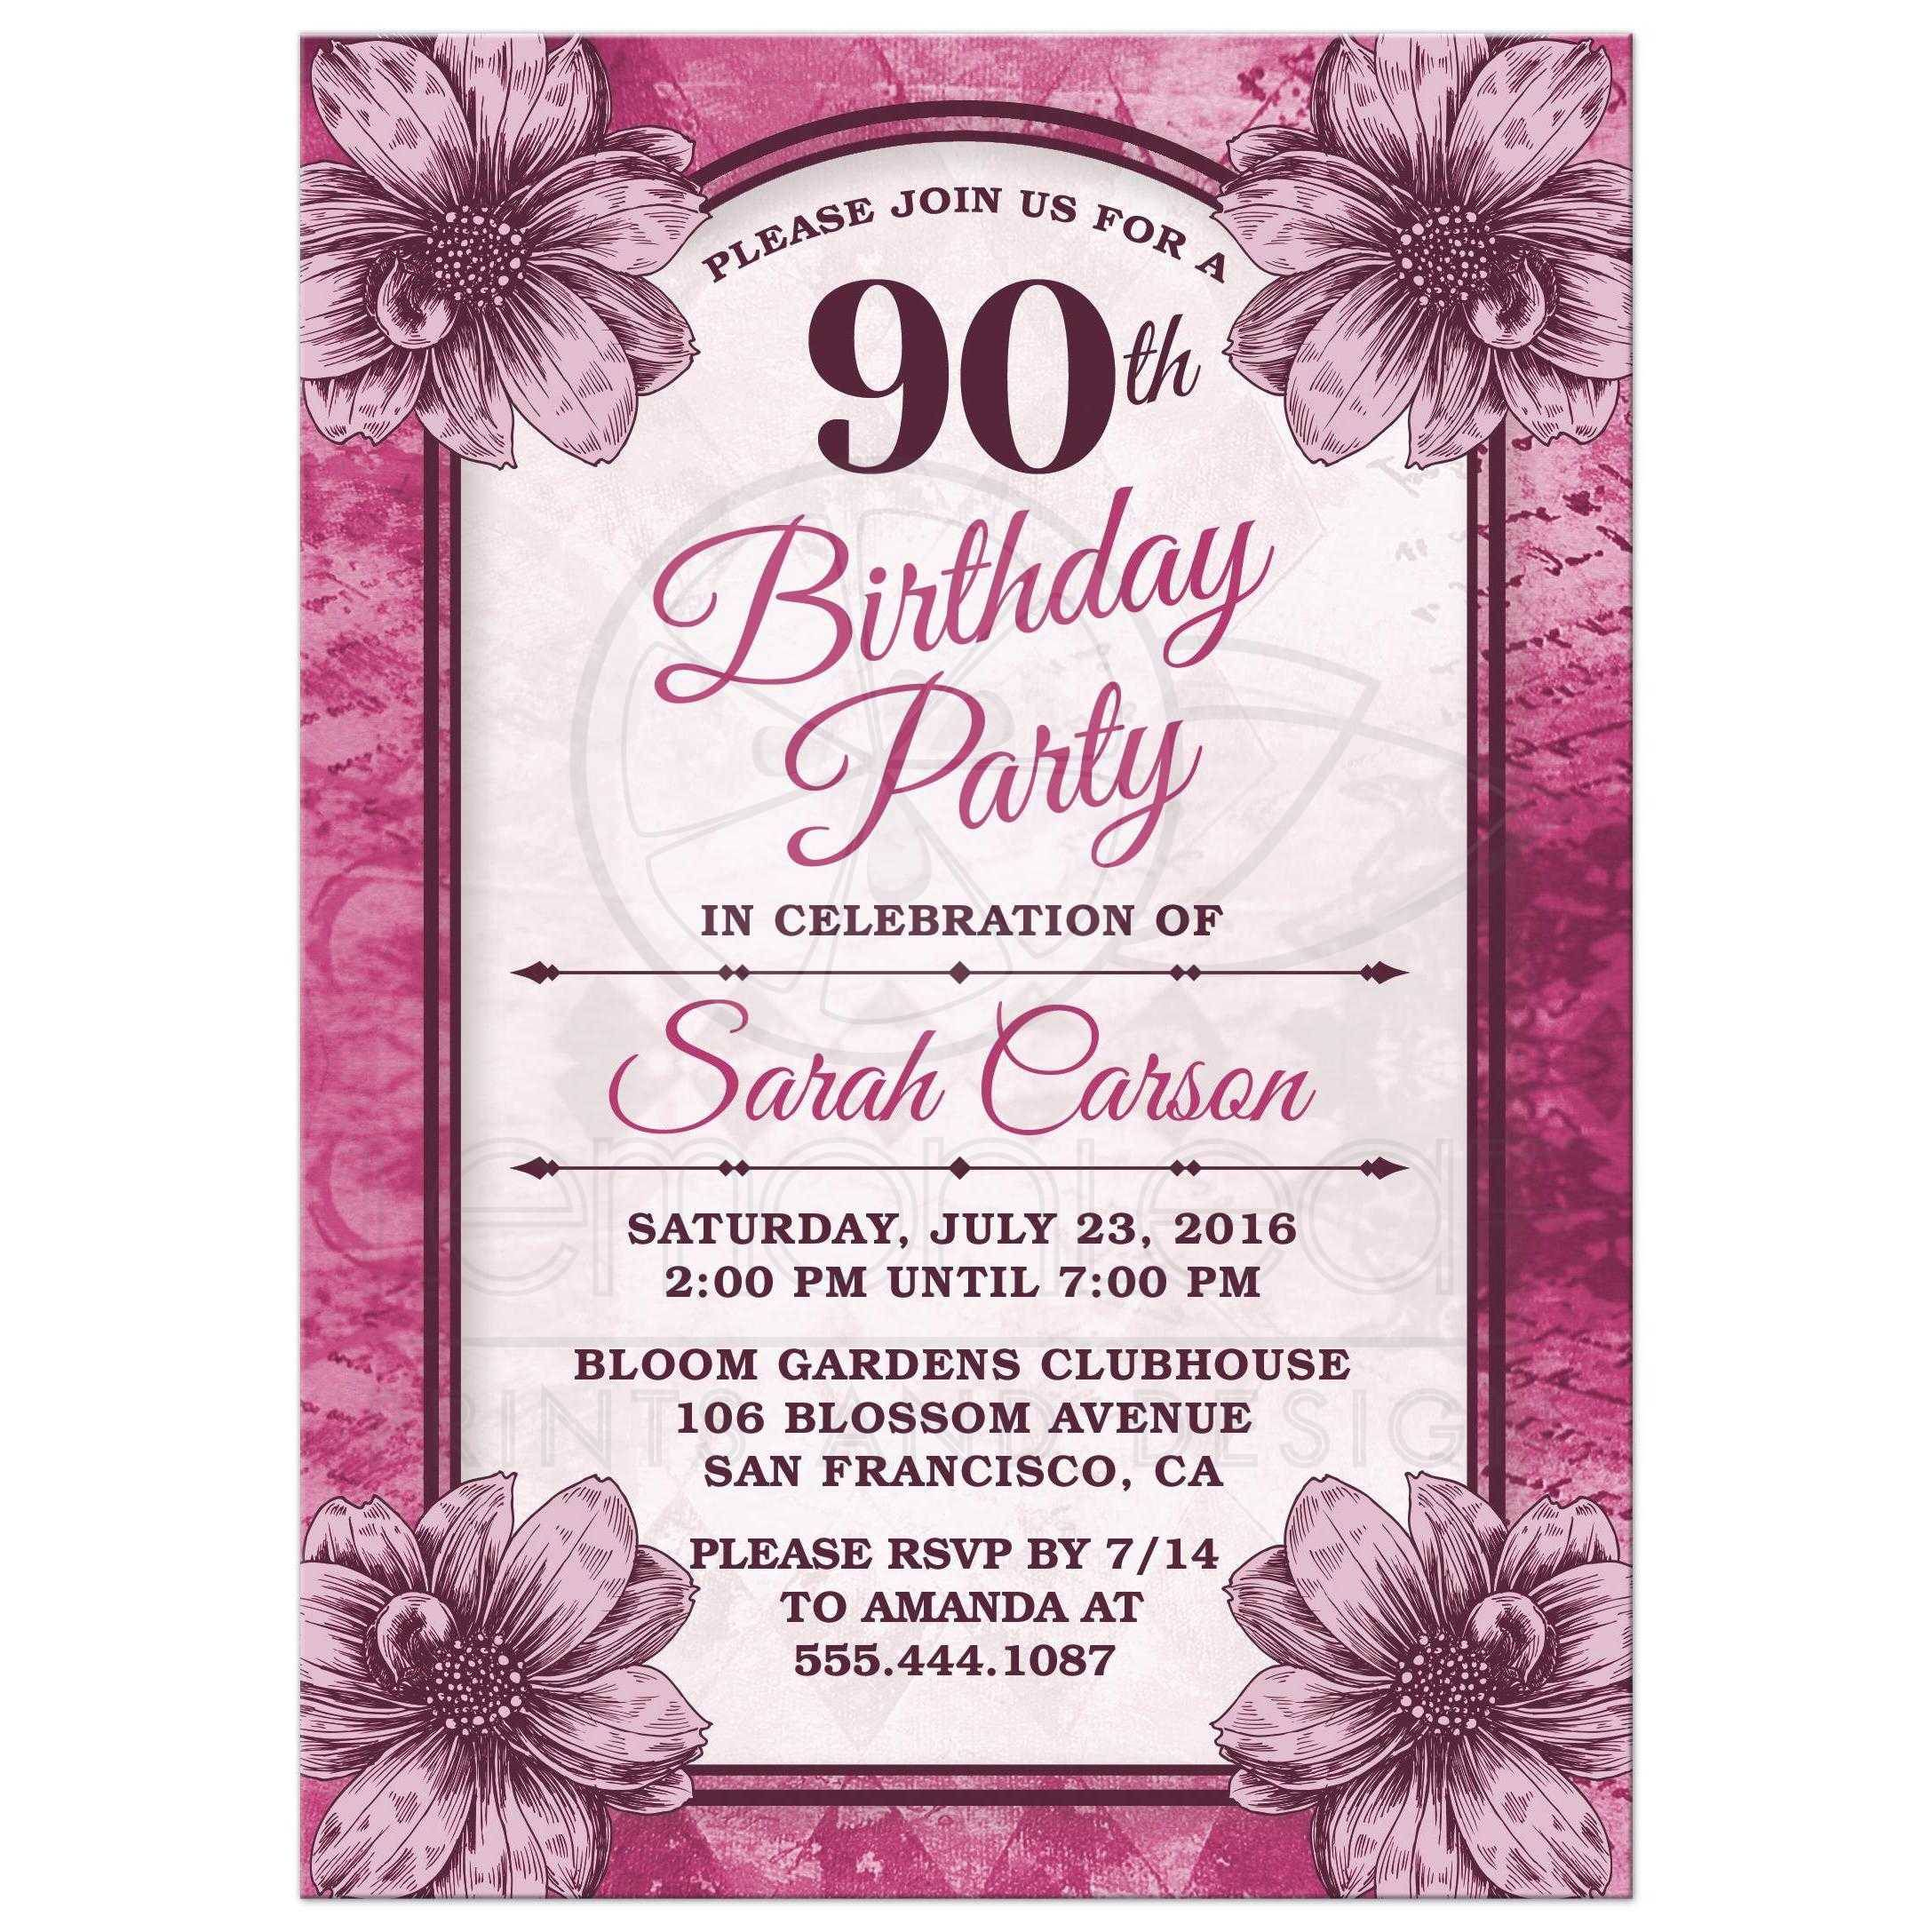 90th Birthday Party Invitations Templates Free  Birthday Invitation Designs Free